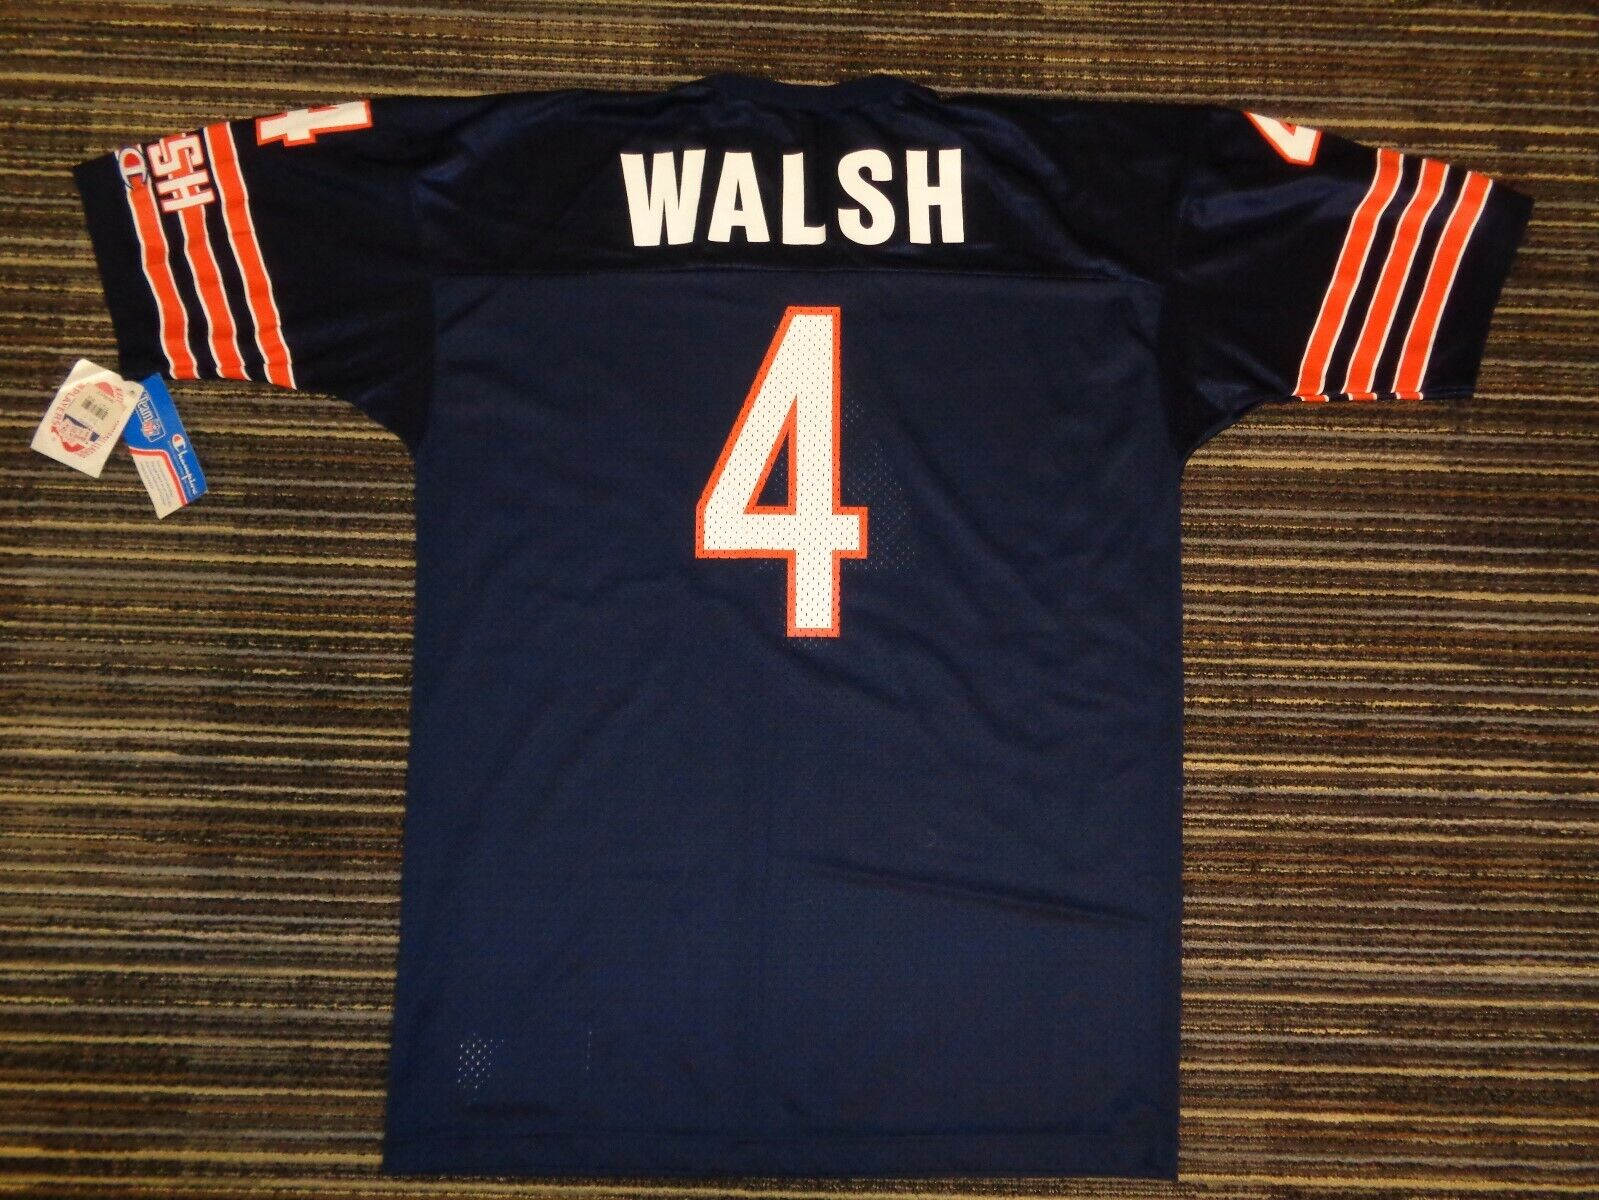 NWT STEVE WALSH 4 CHICAGO BEARS GSH CHAMPION MENS NFL GAME FOOTBALL JERSEY 44 - $39.99